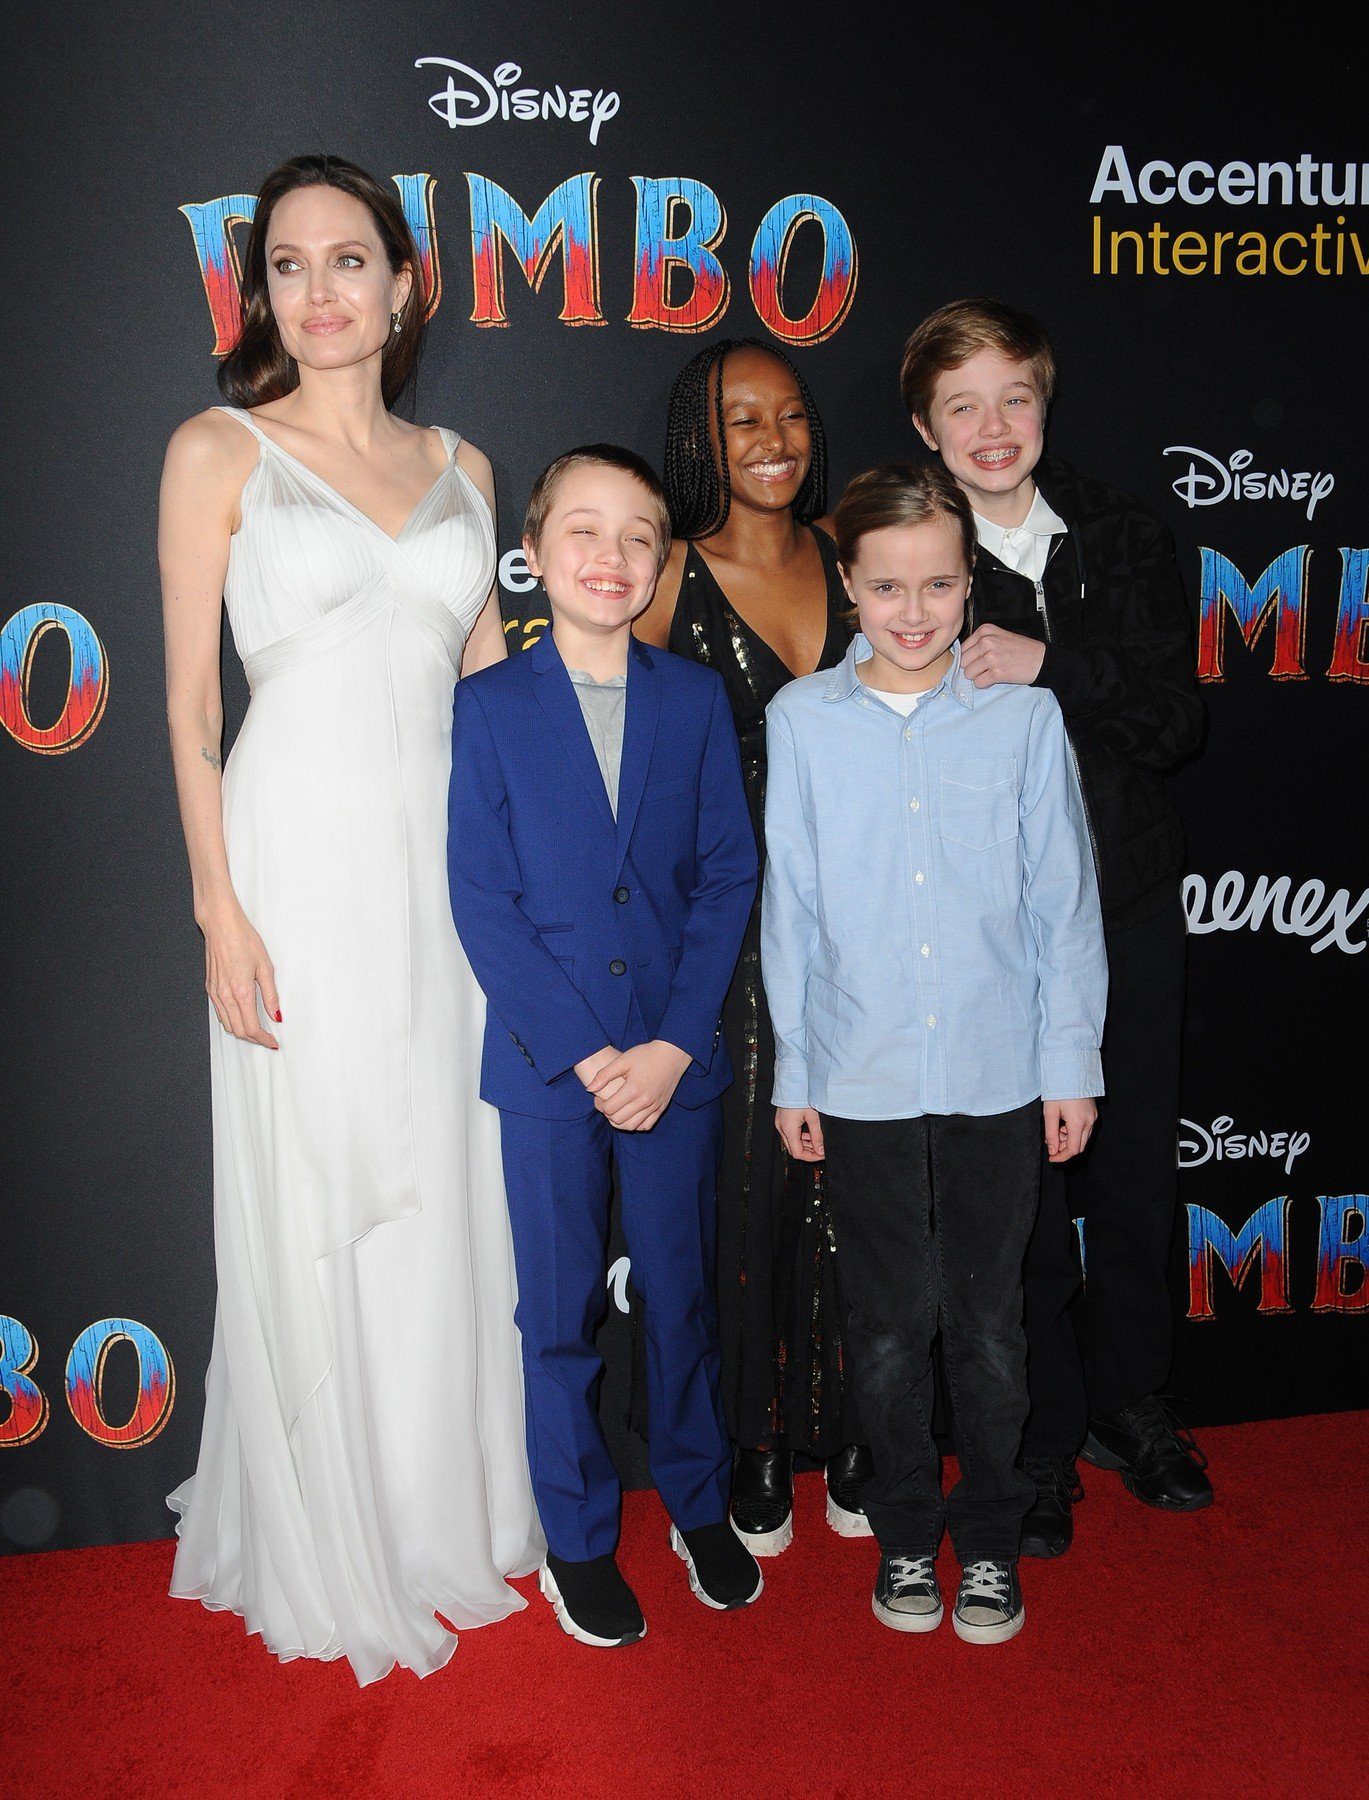 Angelina Jolie, Knox Leon Jolie-Pitt, Zahara Marley Jolie-Pitt, Vivienne Marcheline Jolie-Pitt and Shiloh Nouvel Jolie-Pitt at the World premiere of 'Dumbo' held at the El Capitan Theatre in Hollywood, USA on March 11, 2019., Image: 418866731, License: Rights-managed, Restrictions: , Model Release: no, Credit line: Profimedia, Lumeimages